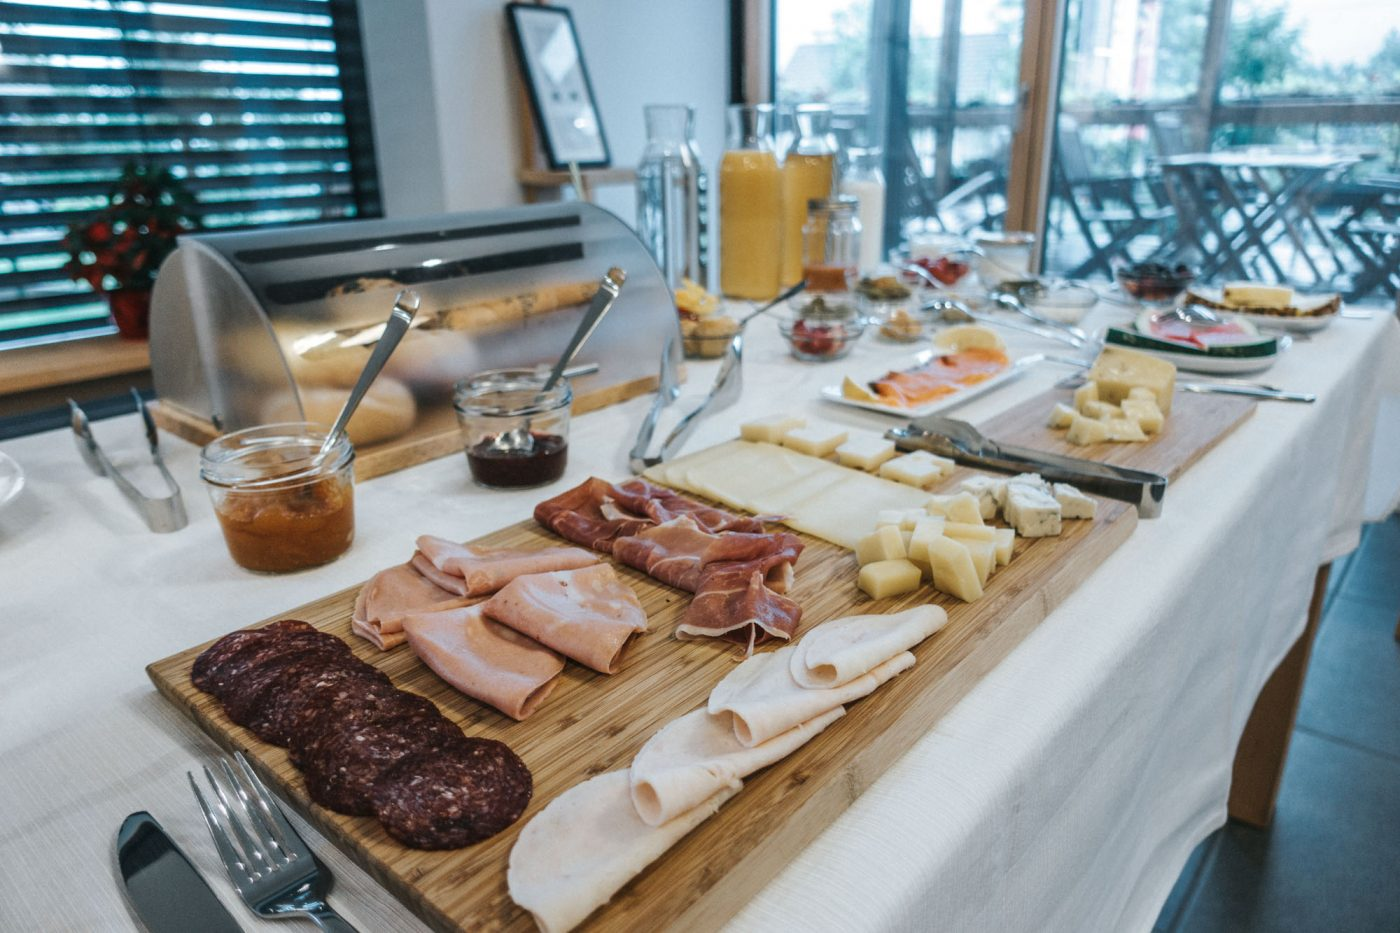 best eco hotels in Slovenia: Breakfast spread at the A.M.S. Beagle